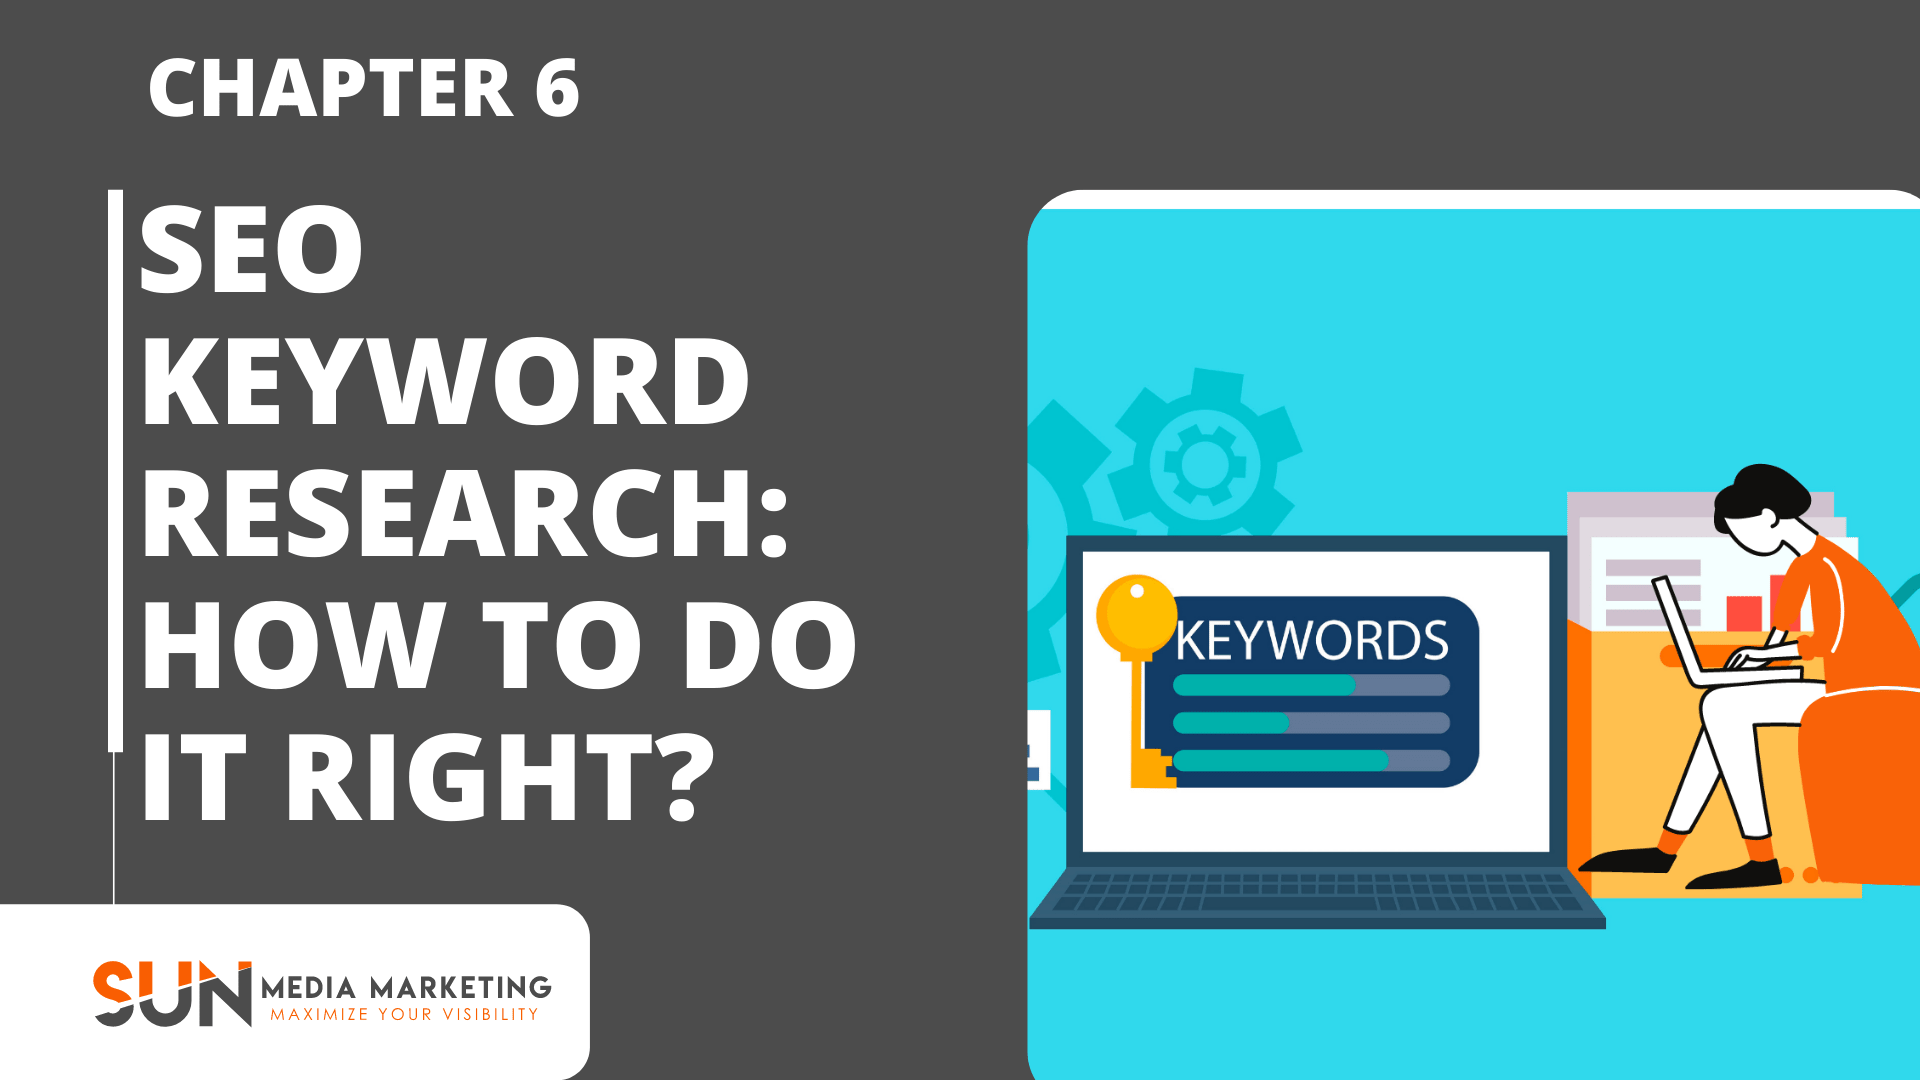 SEO Keyword_Research How to Do it Right